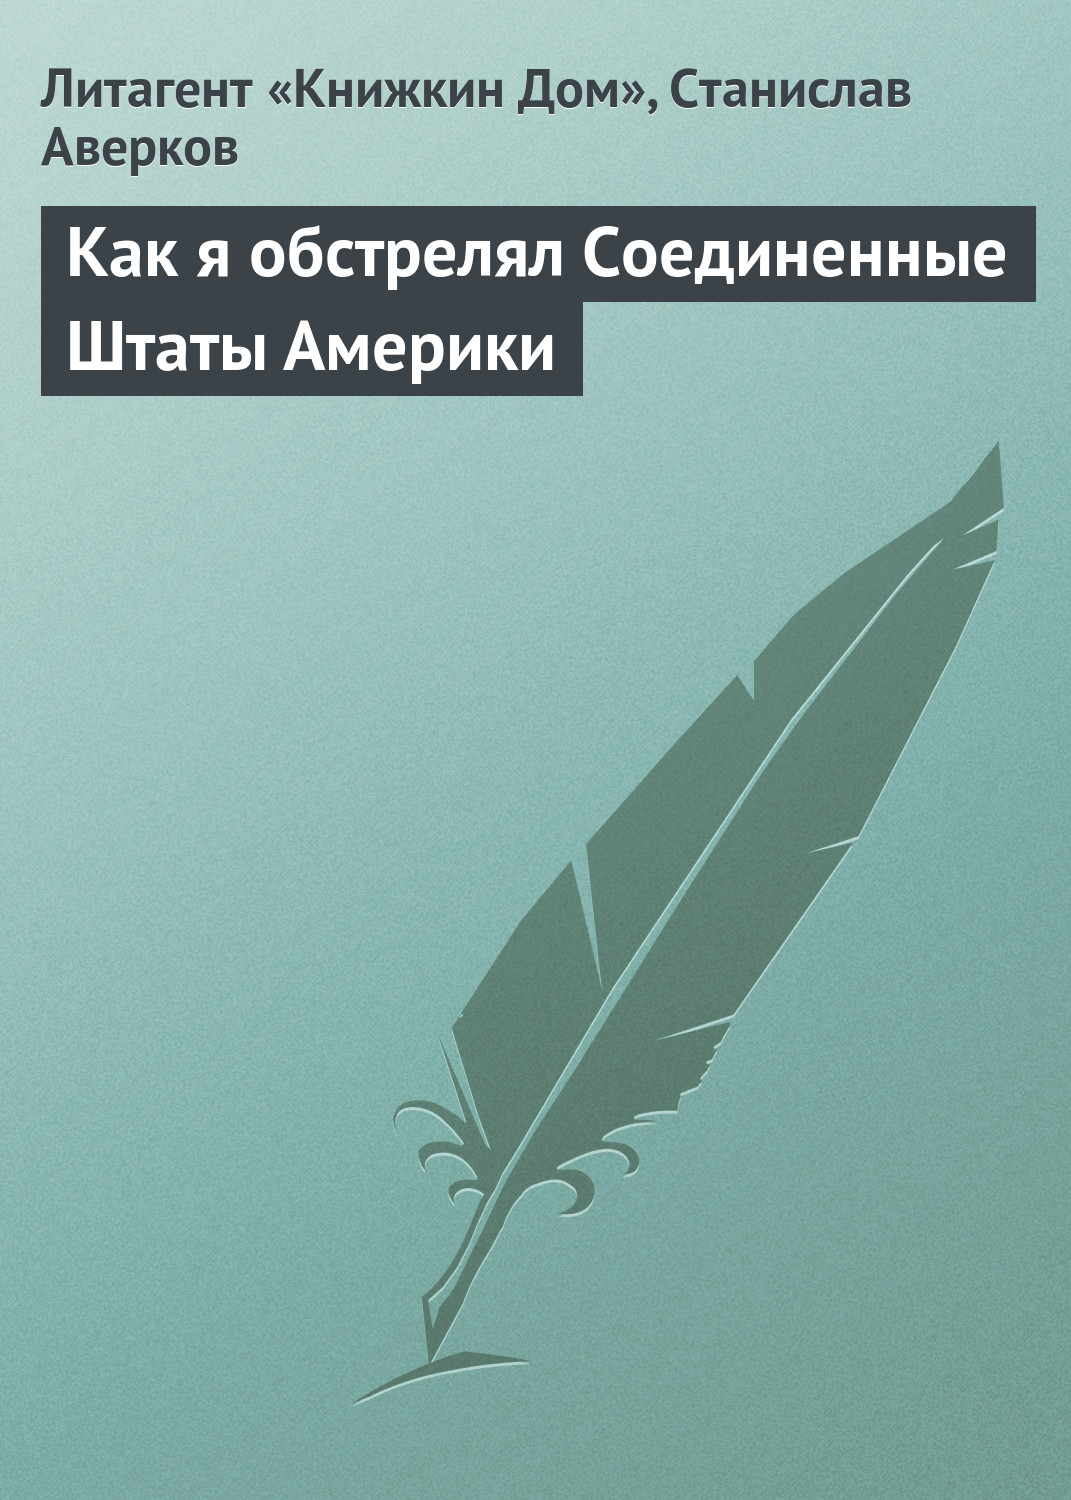 Станислав Аверков Как я обстрелял Соединенные Штаты Америки proceedings of the pathological society of philadelphia